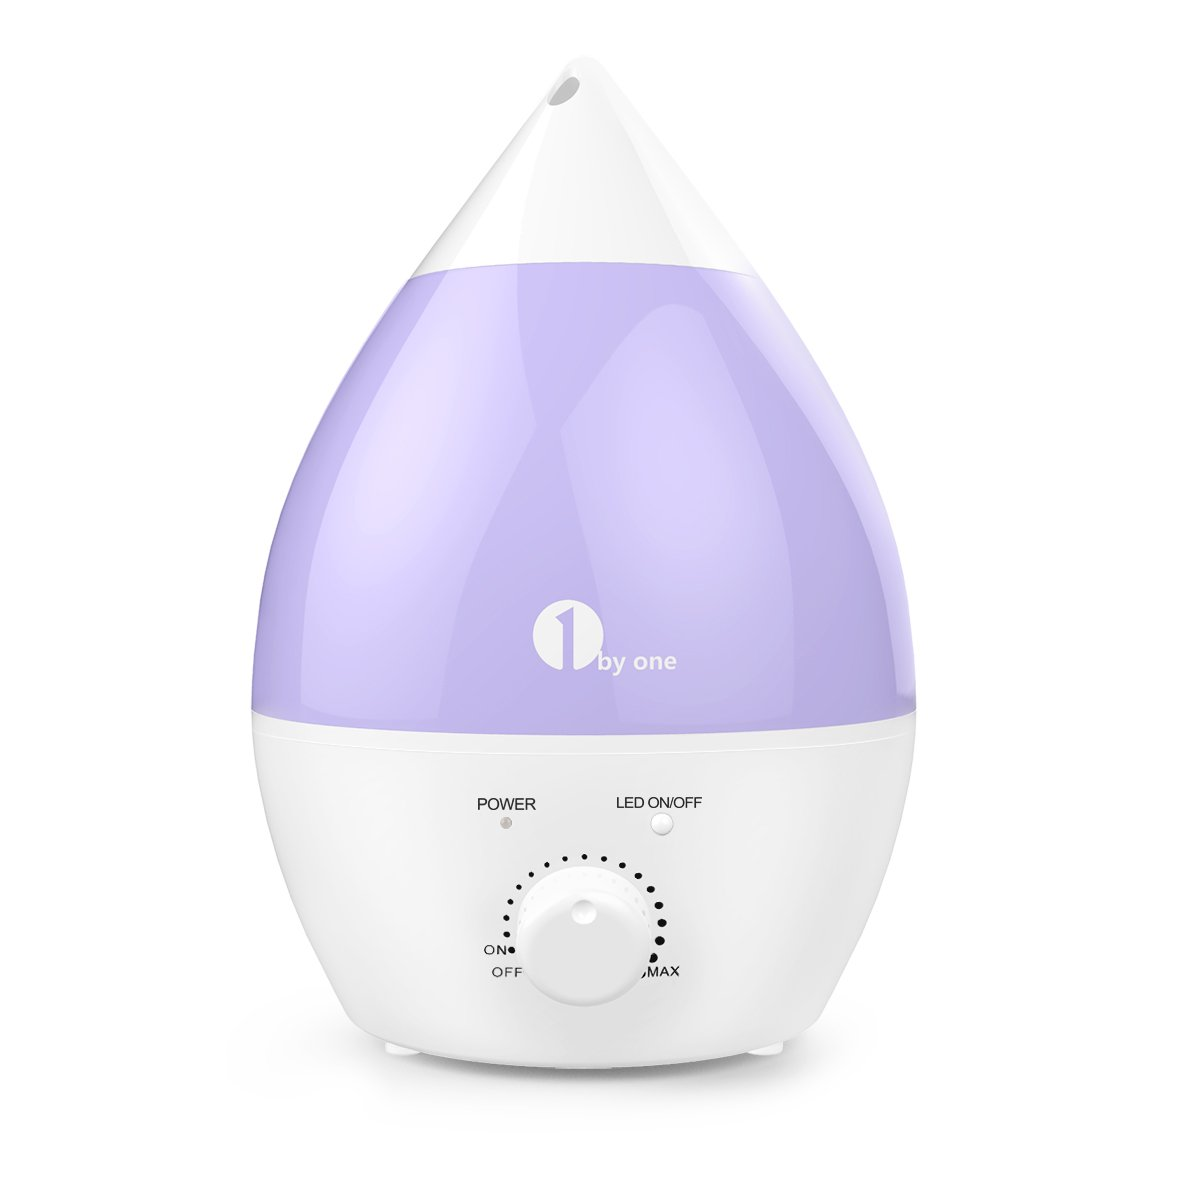 Cool Mist Humidifier, 1byone 2.8L/0.62Gal Ultrasonic Humidifiers with 20+ Hours Use, End for Dry Air, No Noise & 7 Color LED Night Lights with Automatic Shut-off Function for Home Baby Room Bedroom Office 1byone Products Inc.